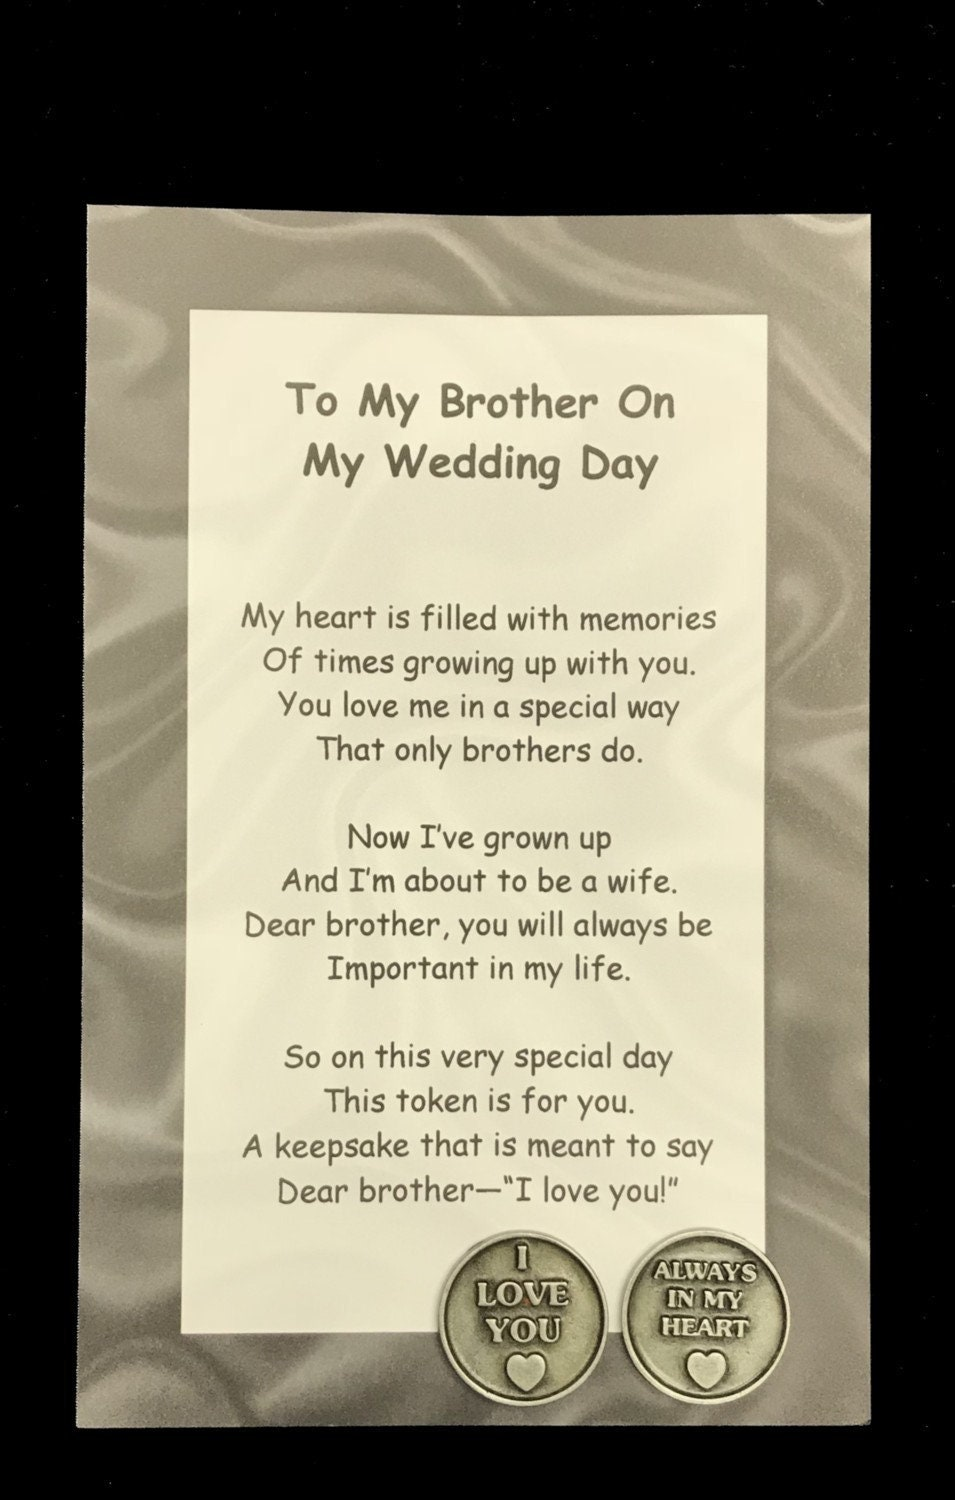 To My Brother On My Wedding Day Poem & Pocket Token Gift